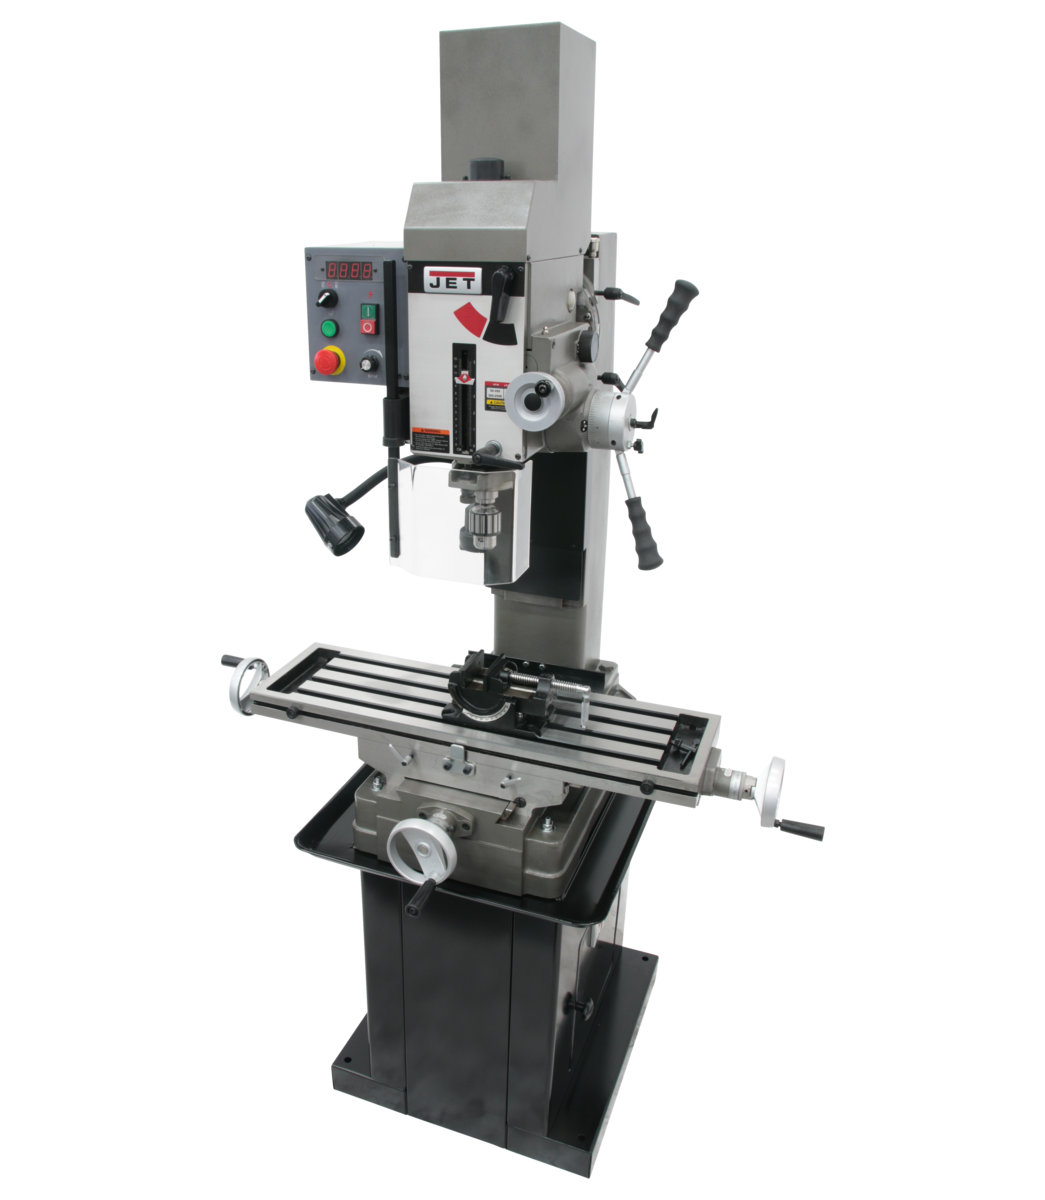 JMD-45VSPFT Variable Speed Geared Head Square Column Mill/Drill with Power Downfeed & Newall DP700 2-Axis DRO & X-Axis Powerfeed